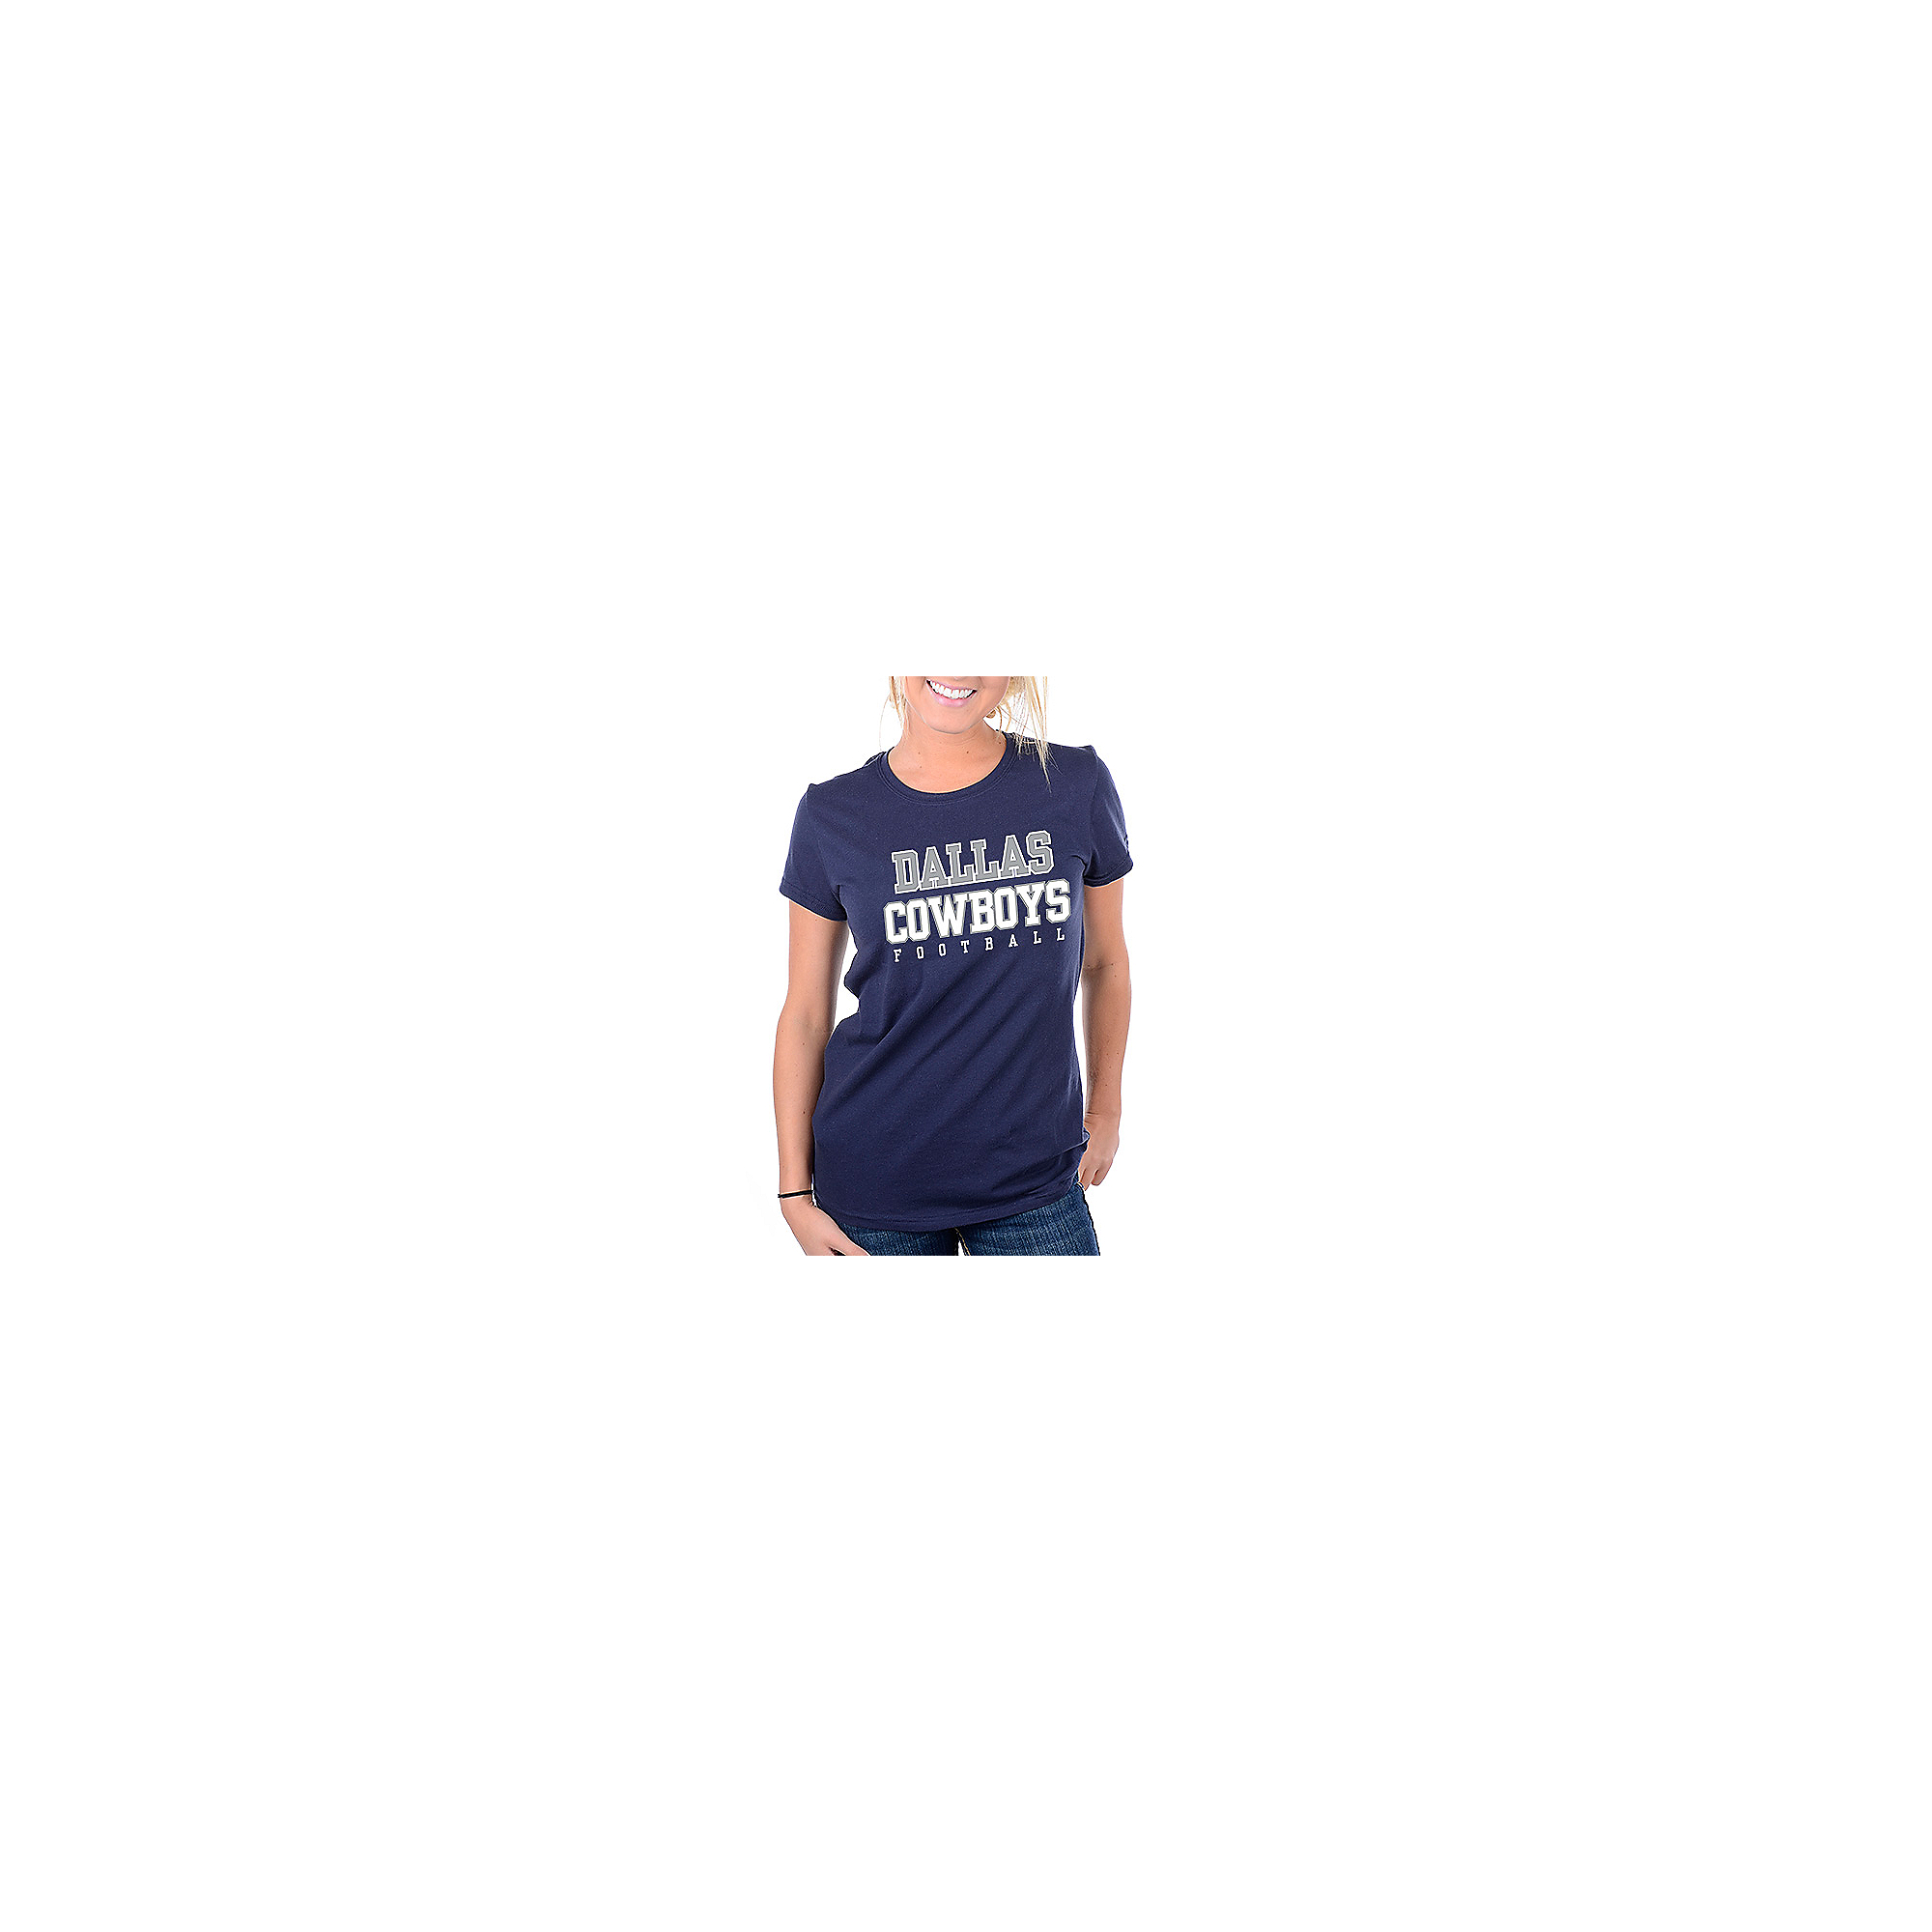 Dallas Cowboys Women's Practice Too T-Shirt